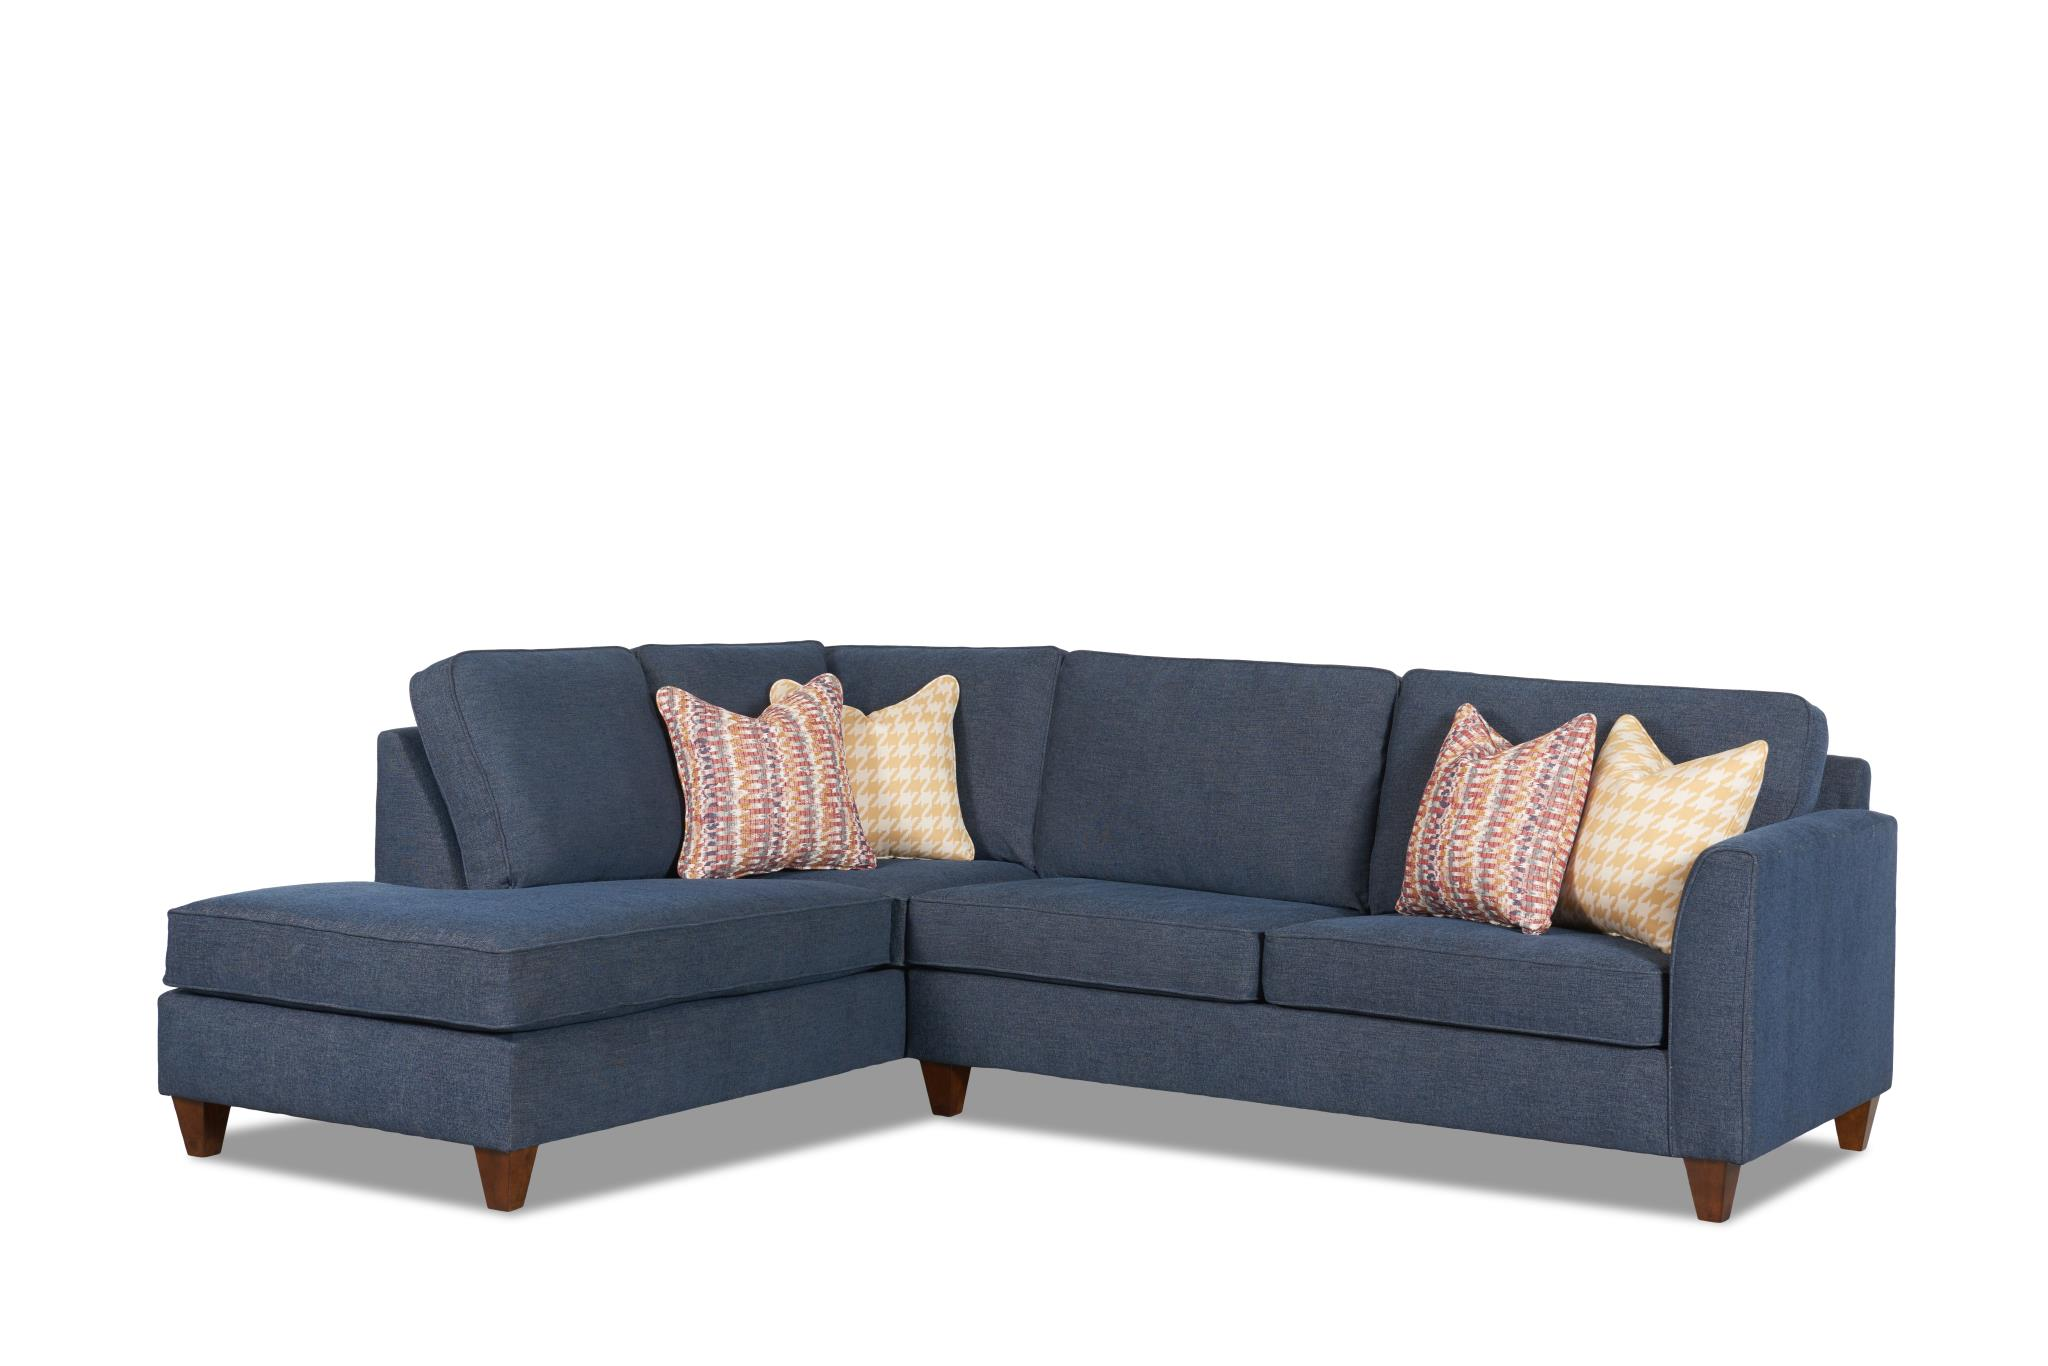 Kooba Sectional Sofa In Shoals Camel By Wood House Upholstery